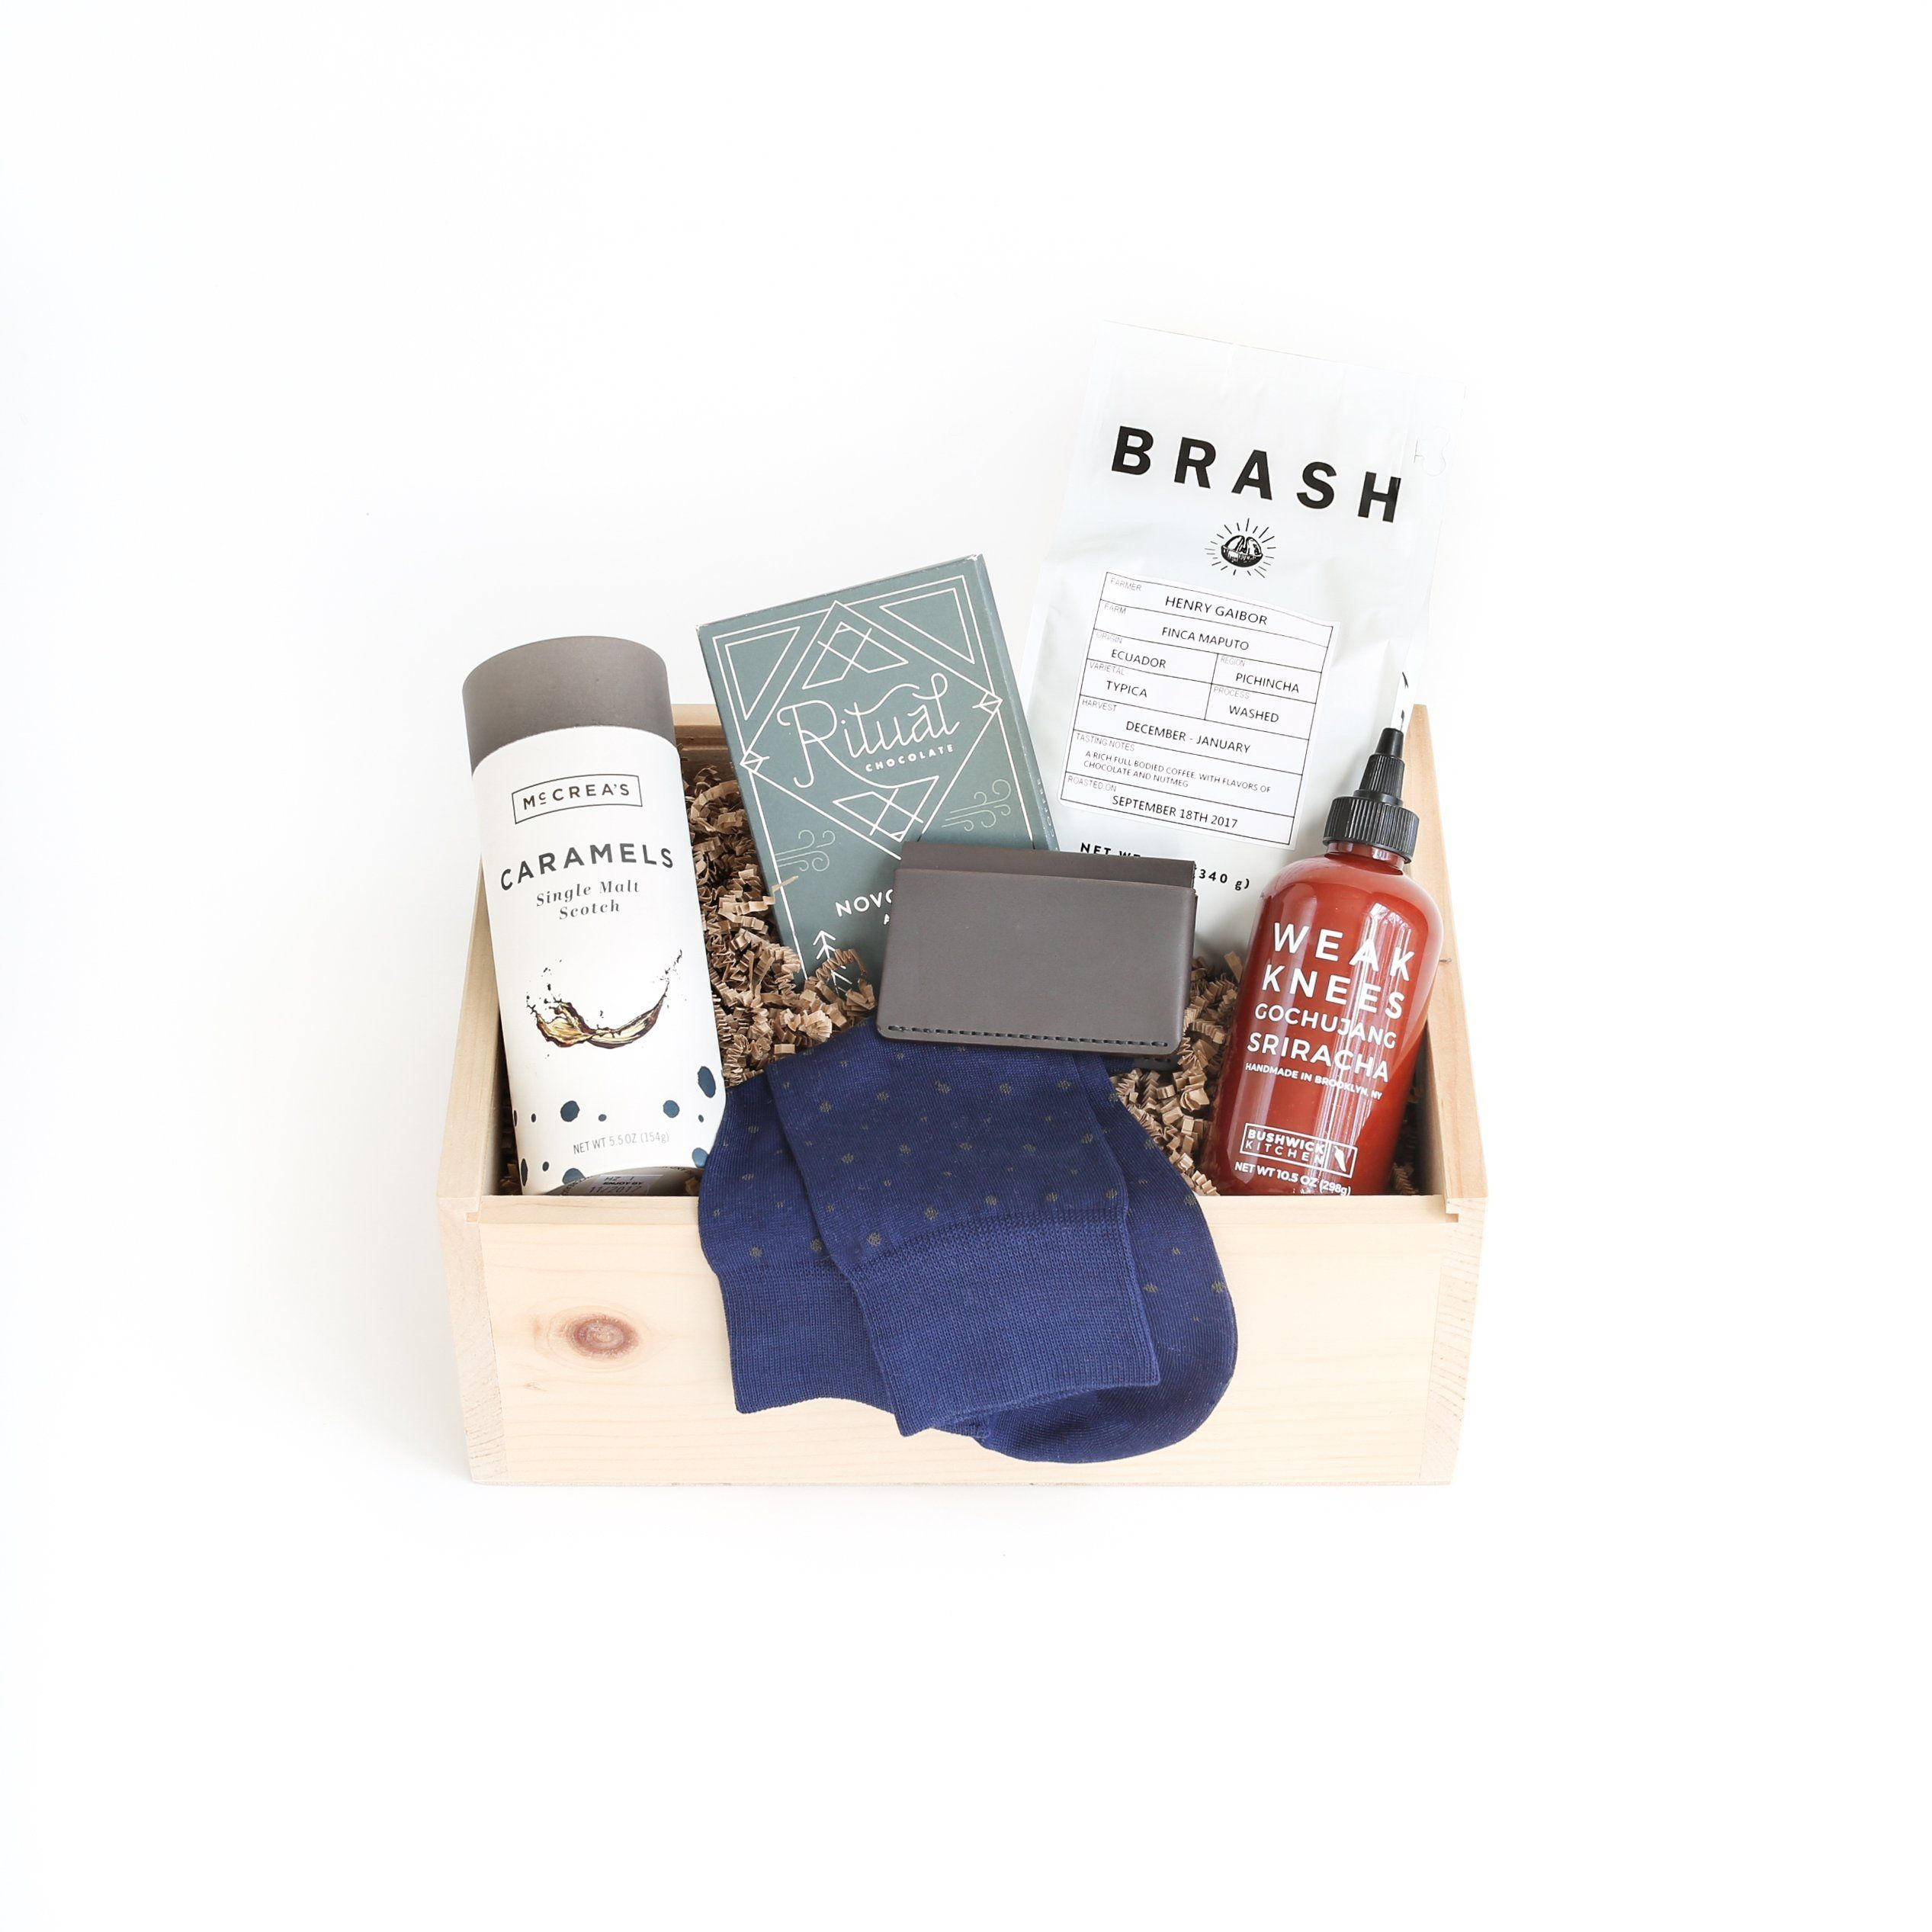 Essentially his deluxe gift box curated gift boxes